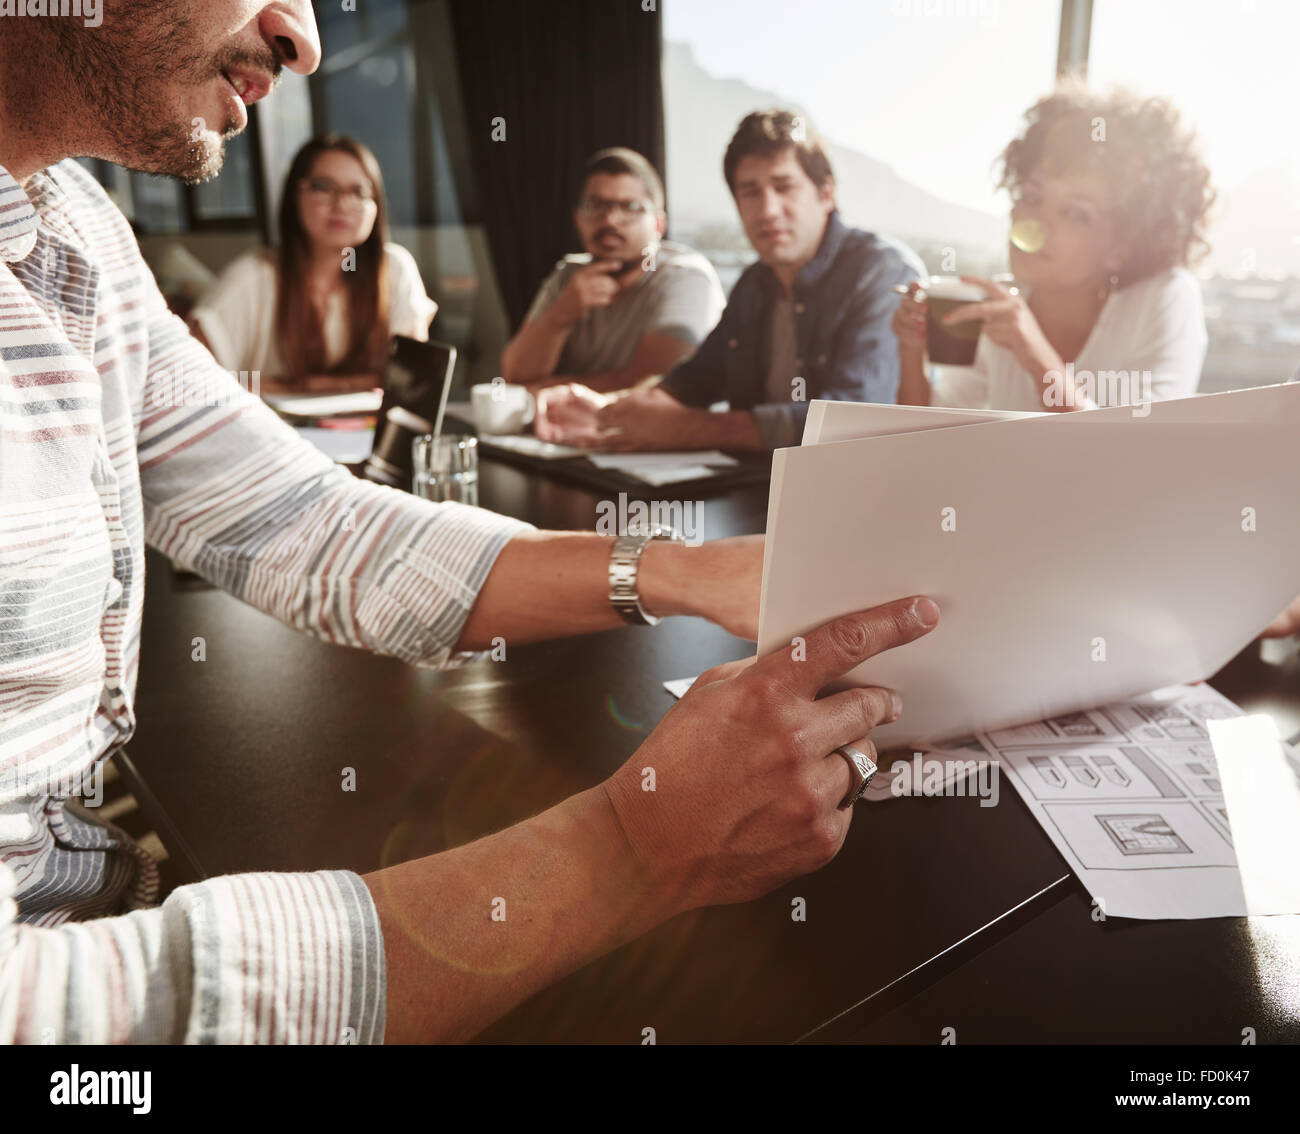 Closeup of hands of young man explaining business plan to colleagues. Creative people meeting in conference room. - Stock Image